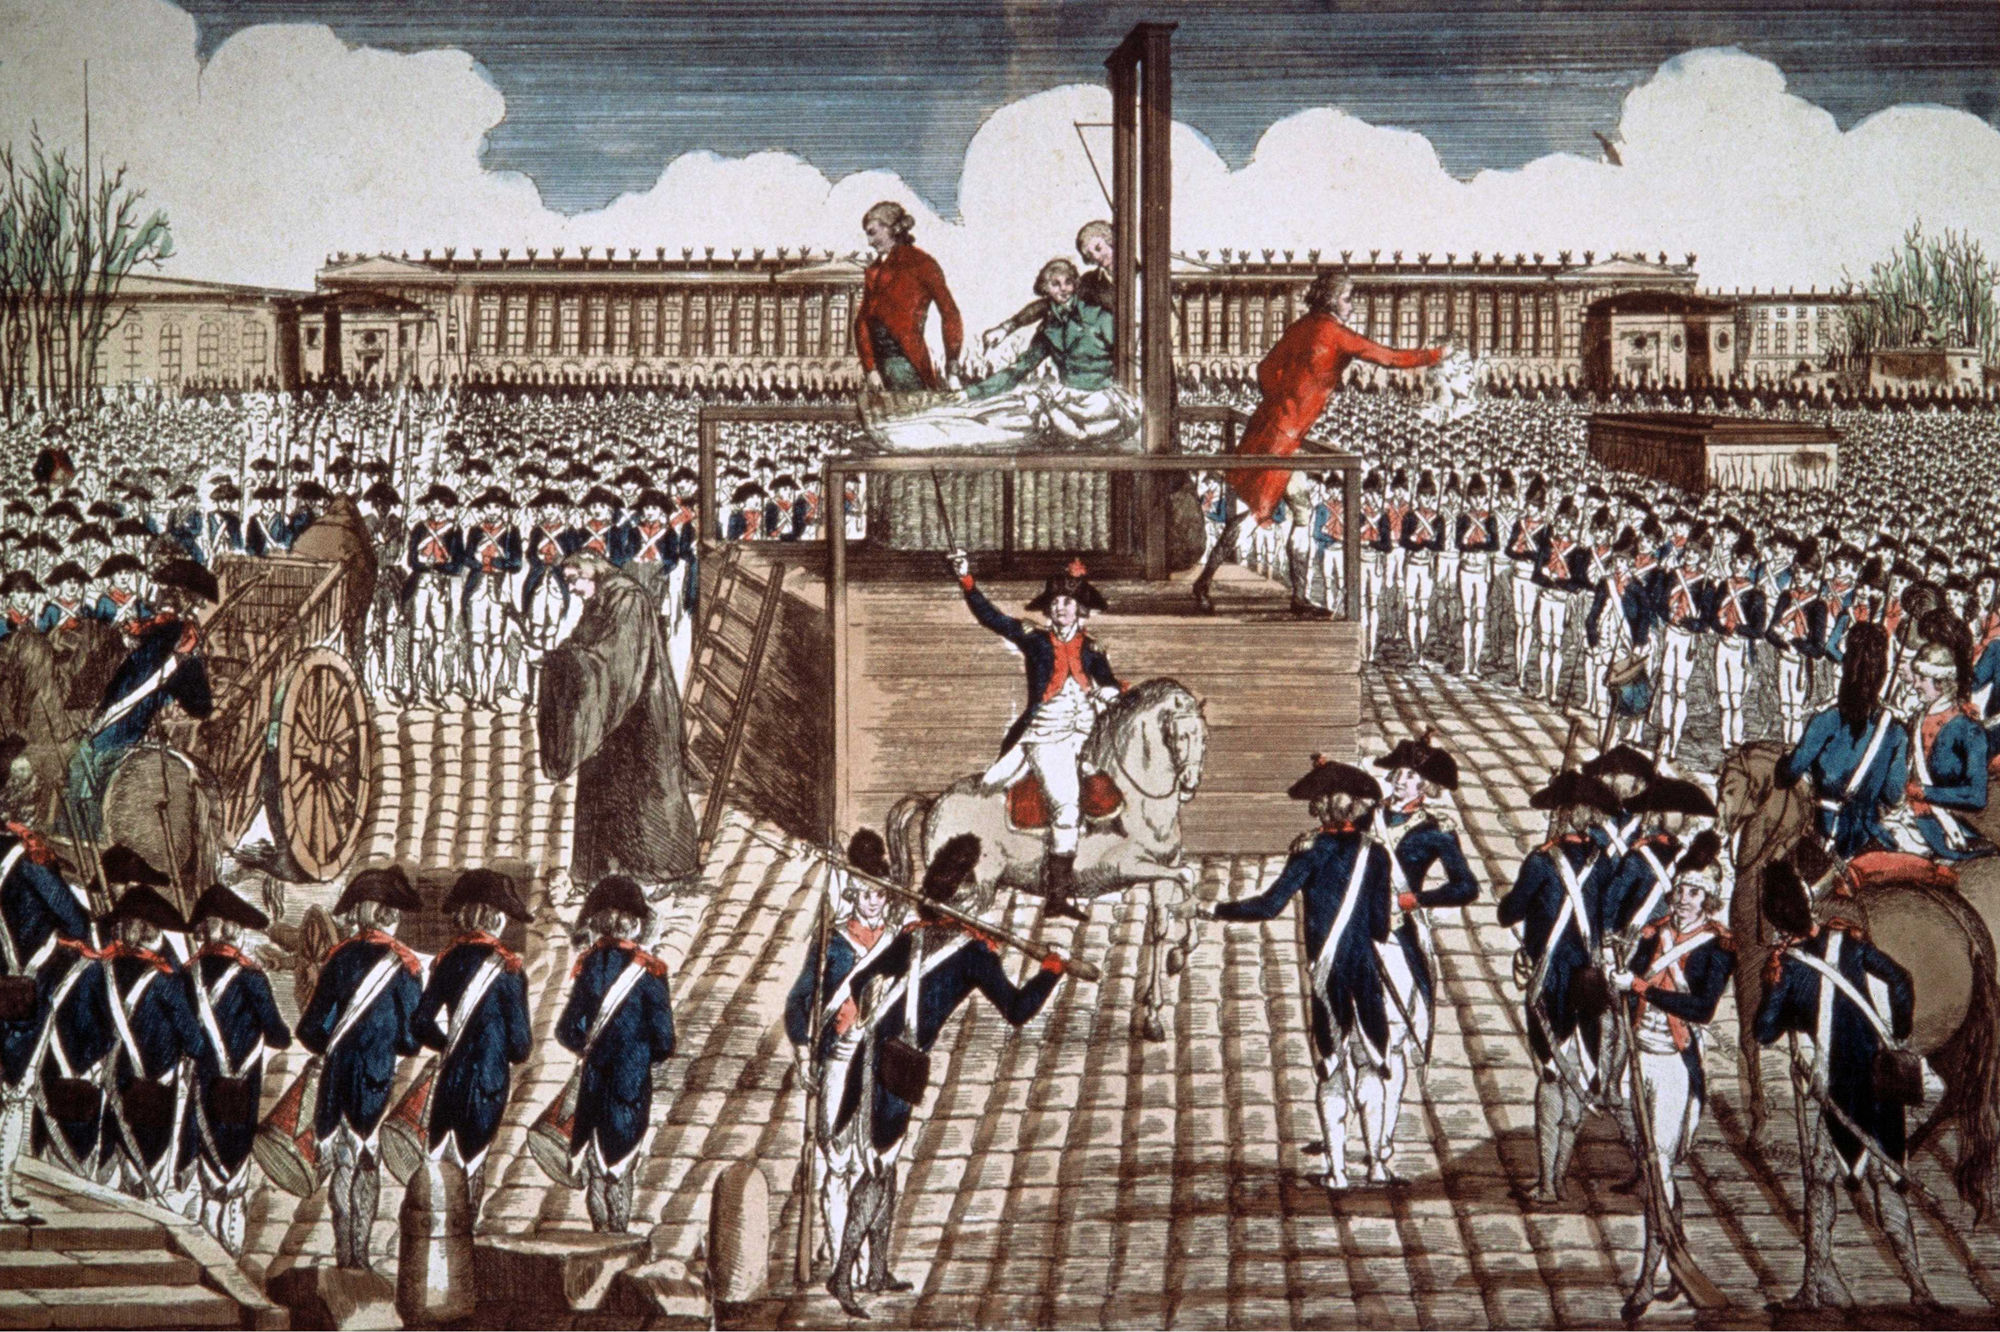 the situation in france years after the french revolution and the respective reign of terror Revolutionaries used terror against imagined opponents  clerks, and ex-priests rose to power in towns throughout france in 1793 and 1794  the french absolute monarchy had deprived its subjects of practical experience in politics  regime languedoc in the first years after 1789, but the revolution awakened hope.